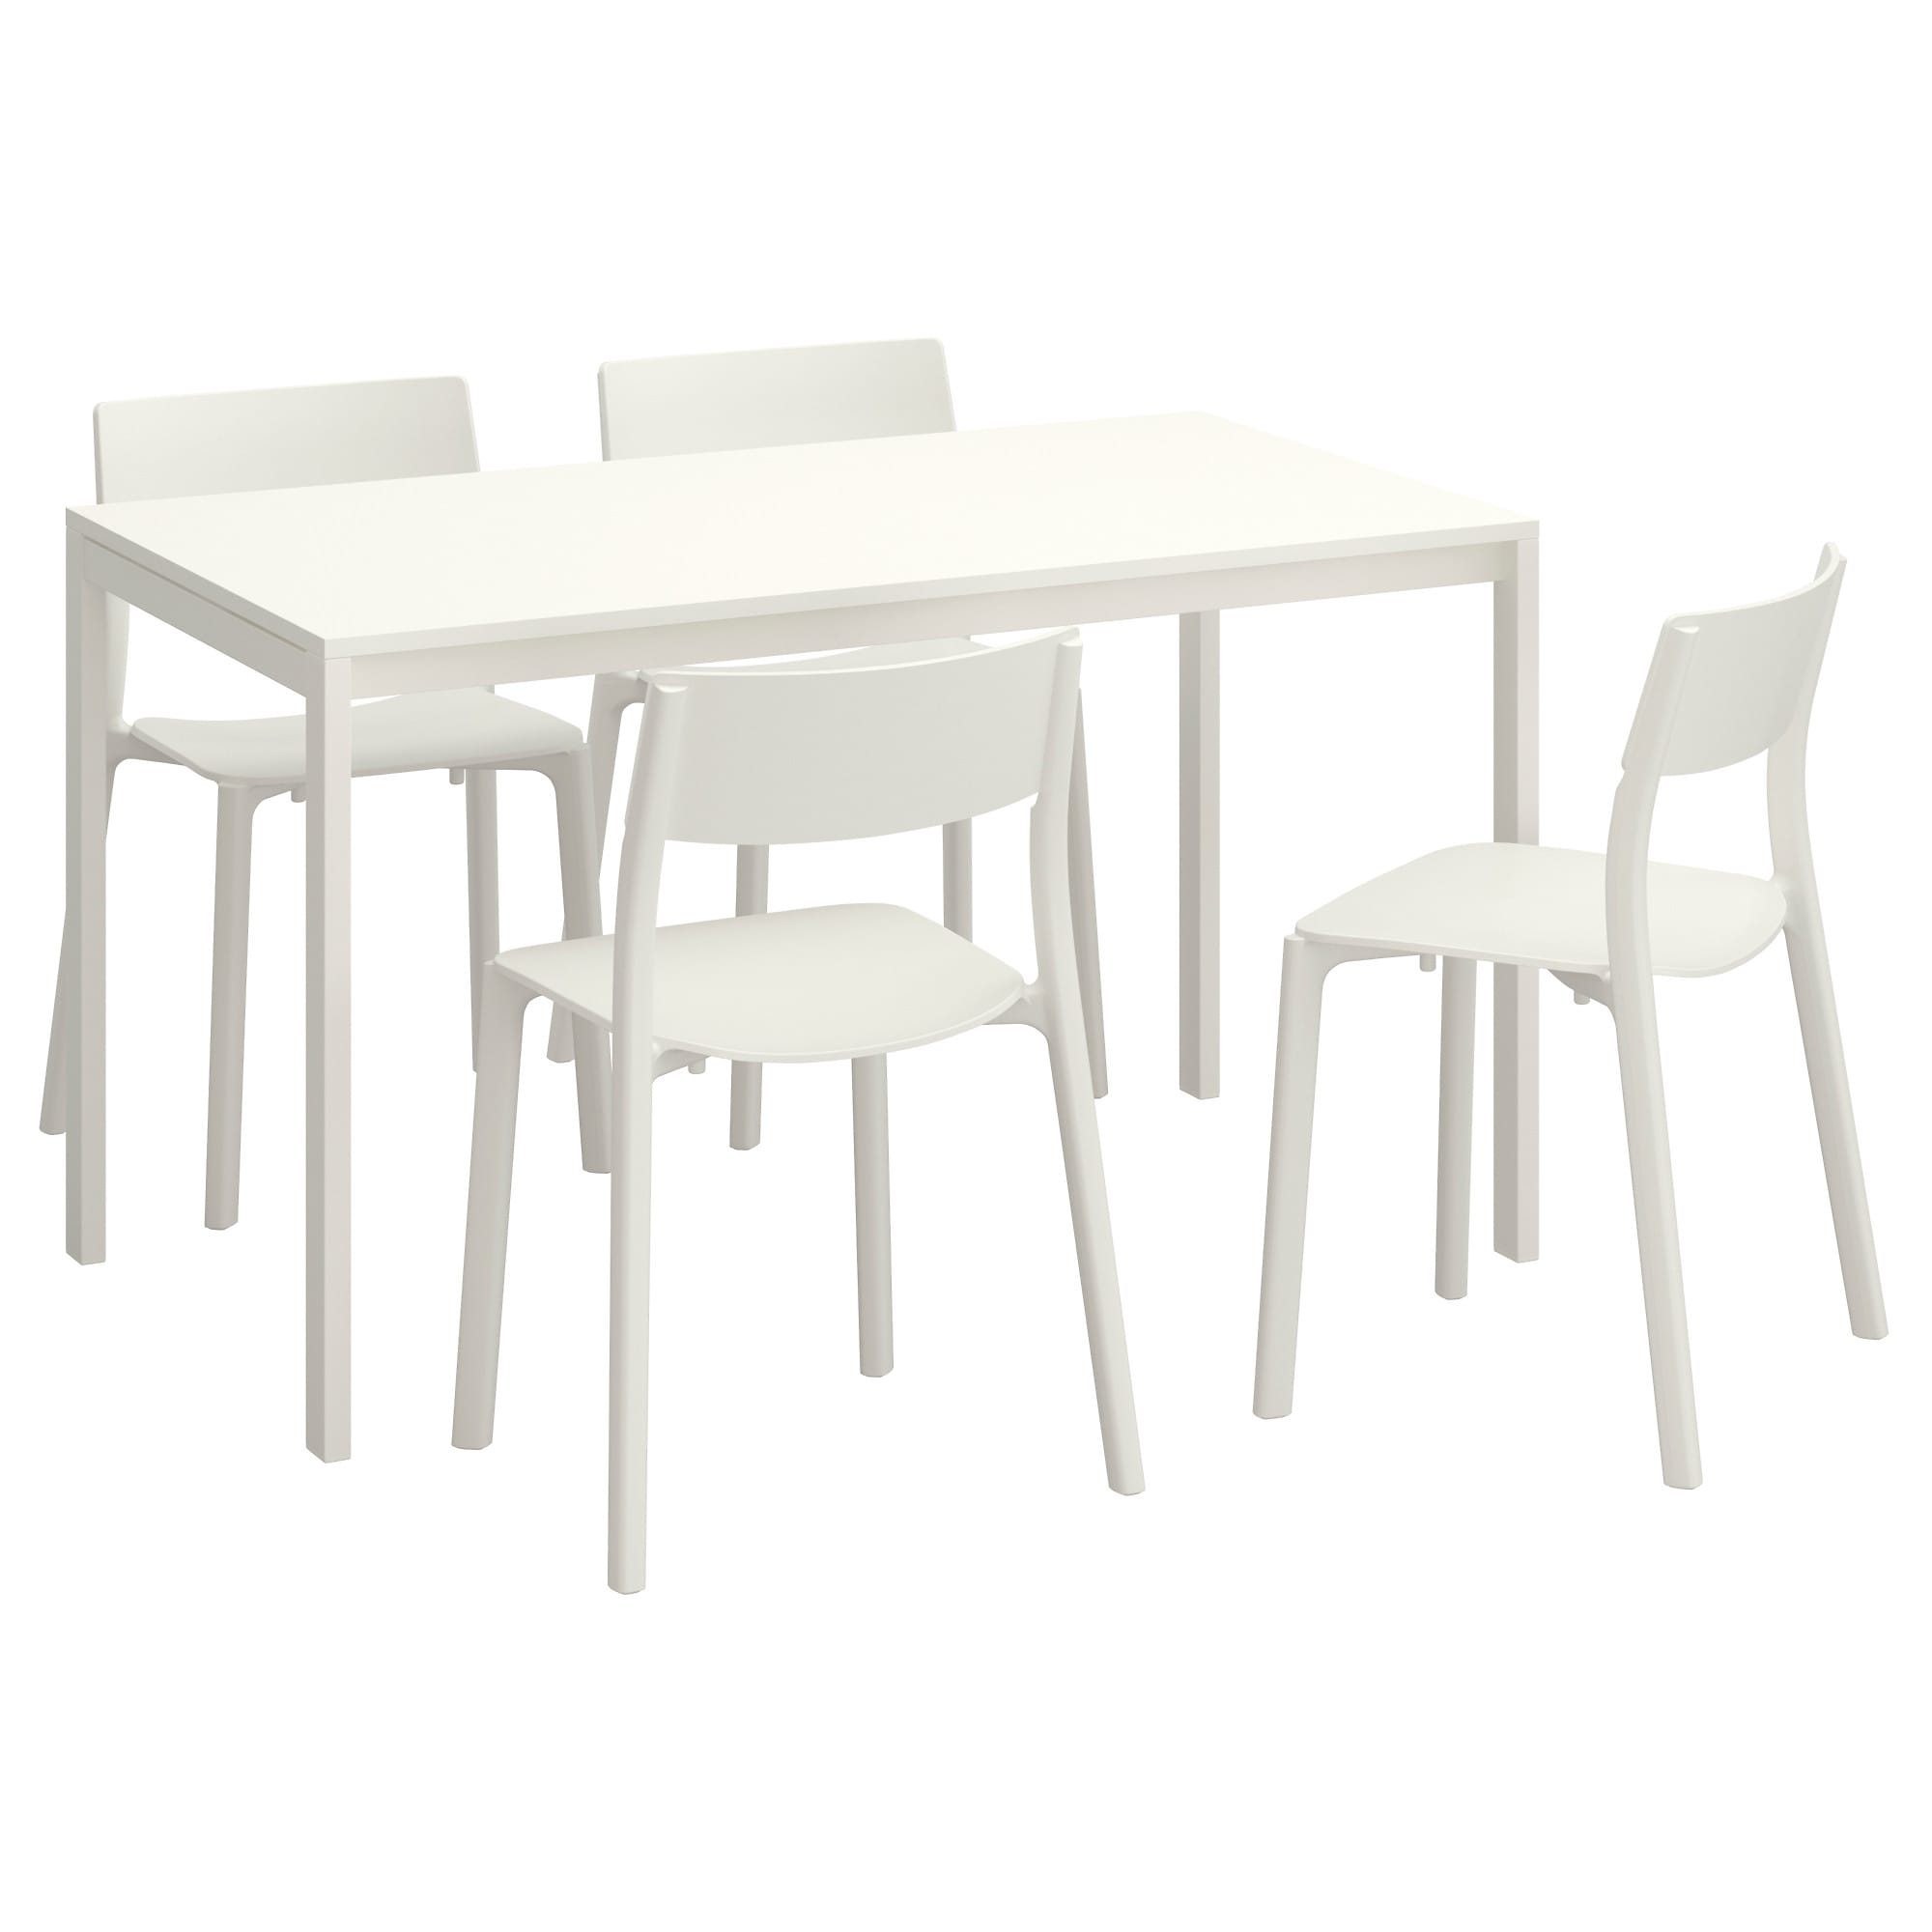 Popular White Melamine Dining Tables For Melltorp / Janinge Table And 4 Chairs – Ikea (Gallery 24 of 25)